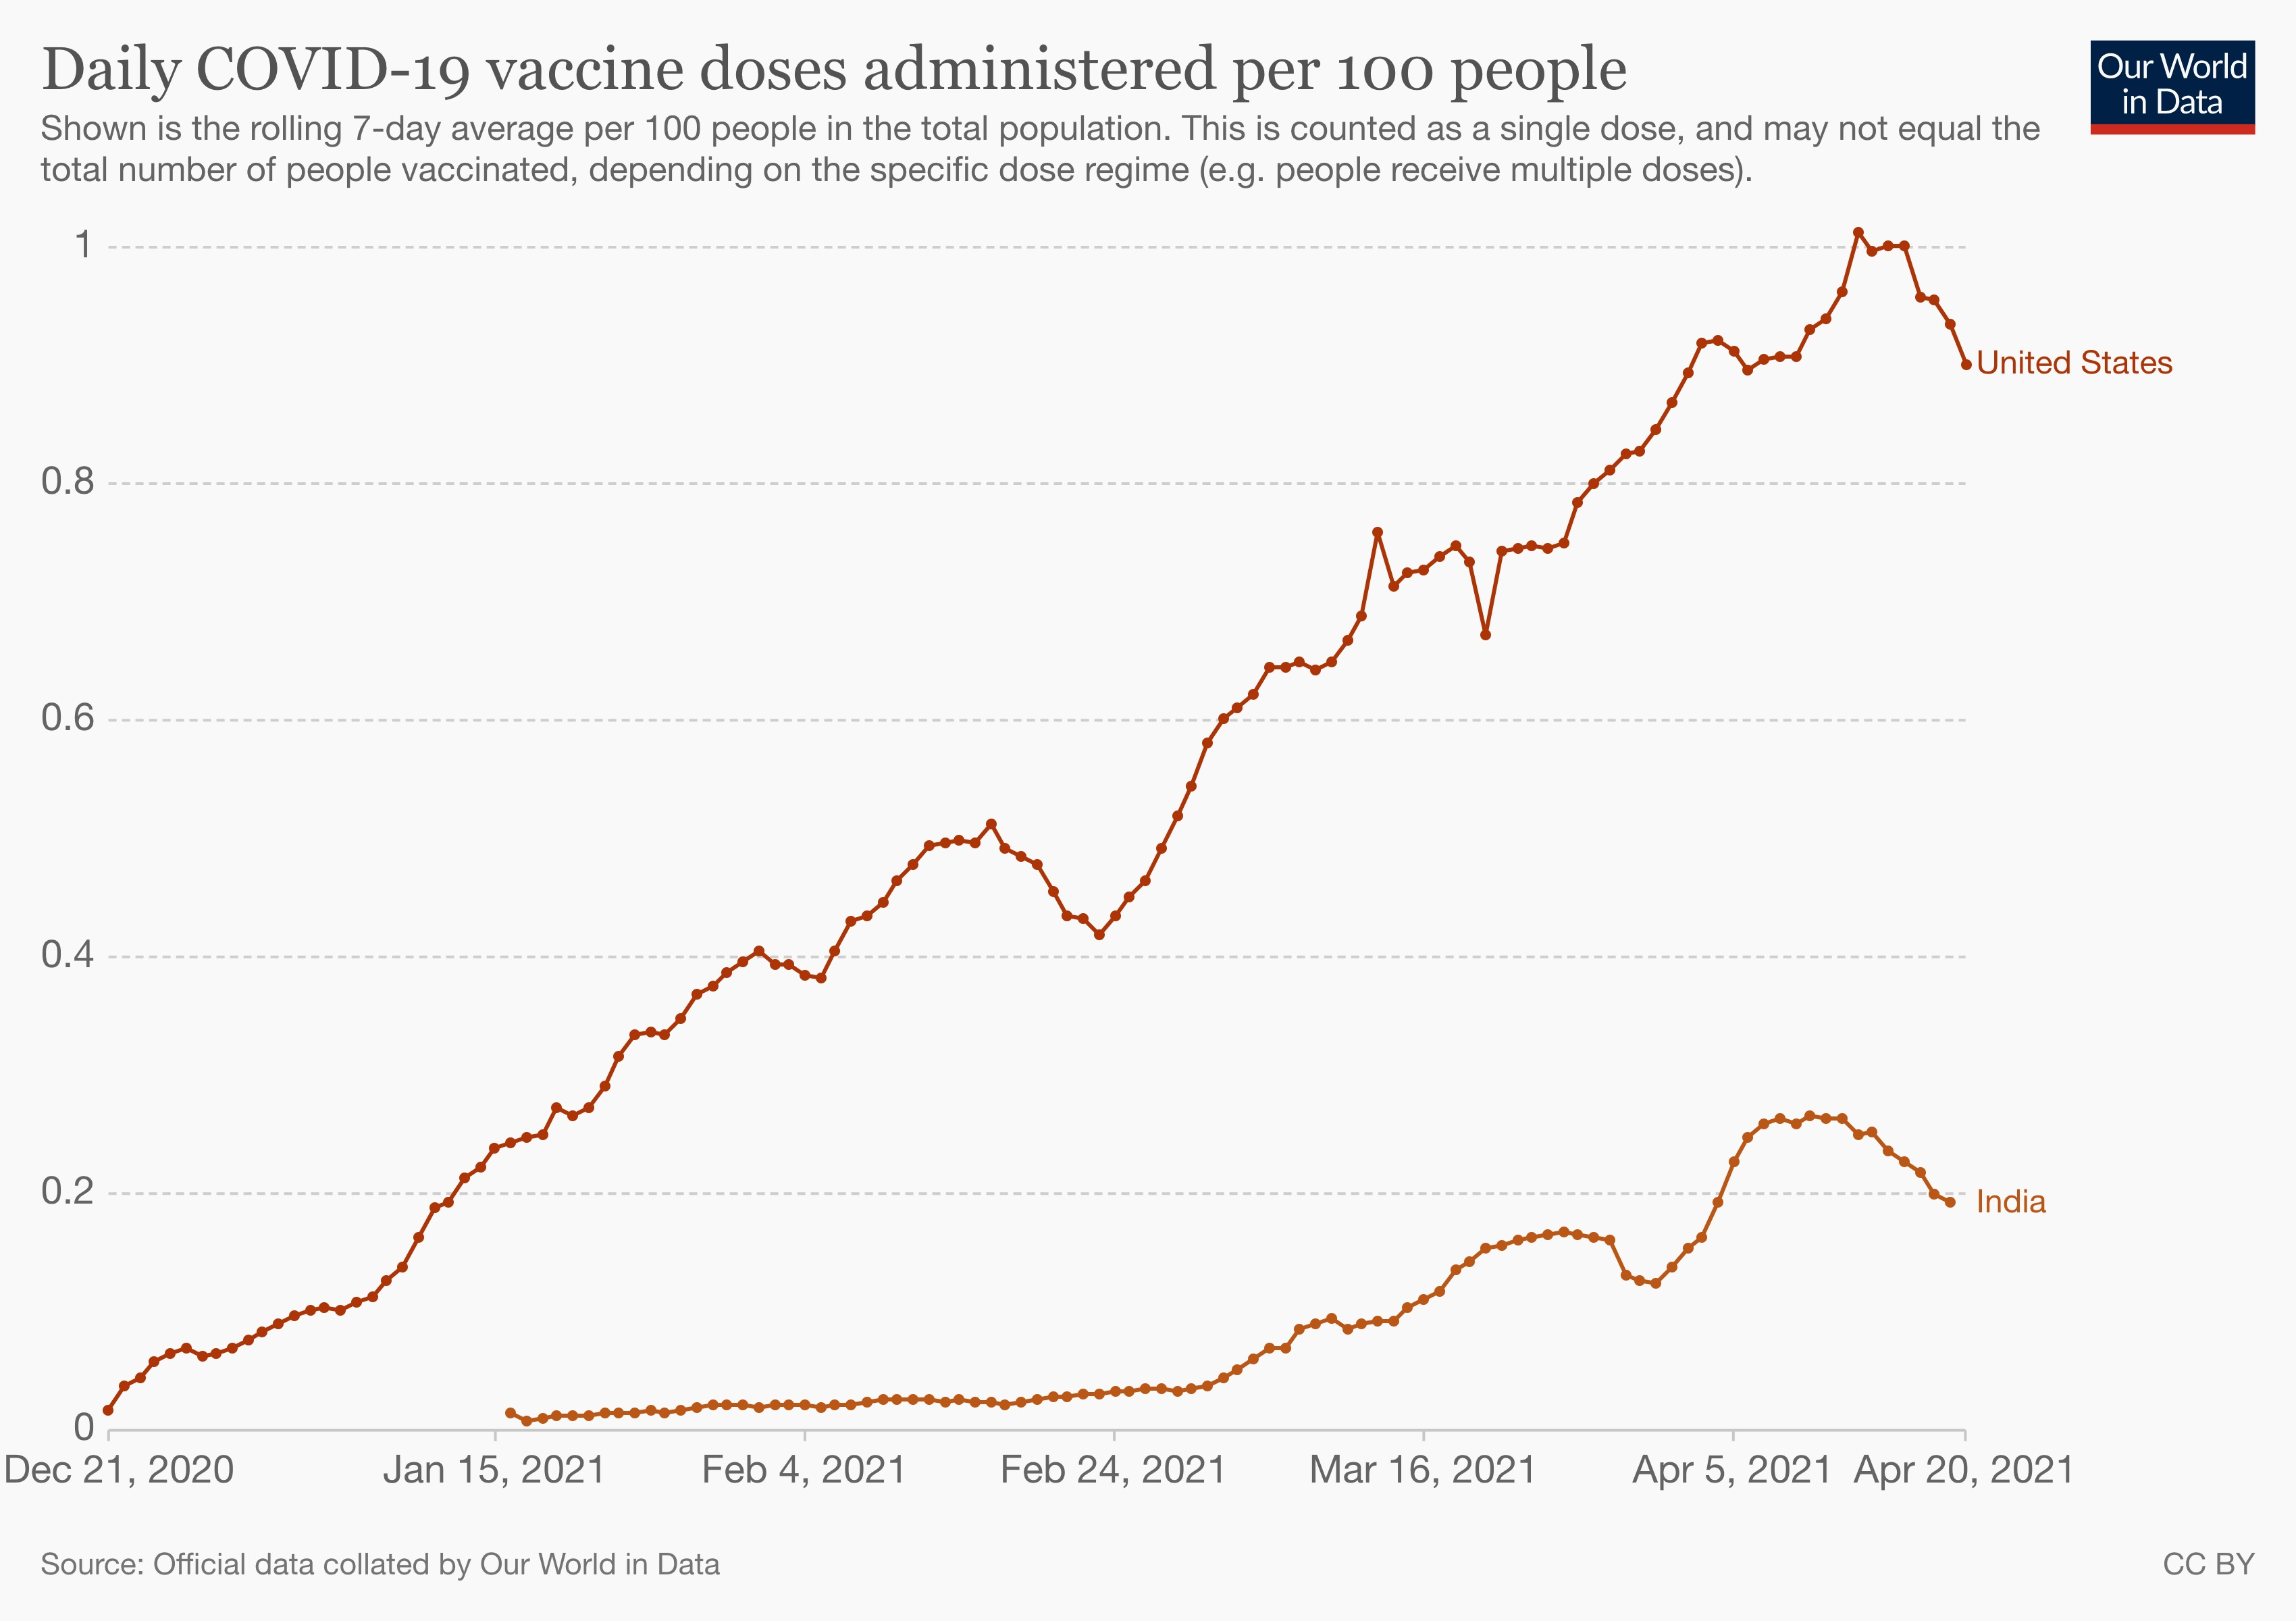 Vaccine doses administered by India and the US, relative to their populations.